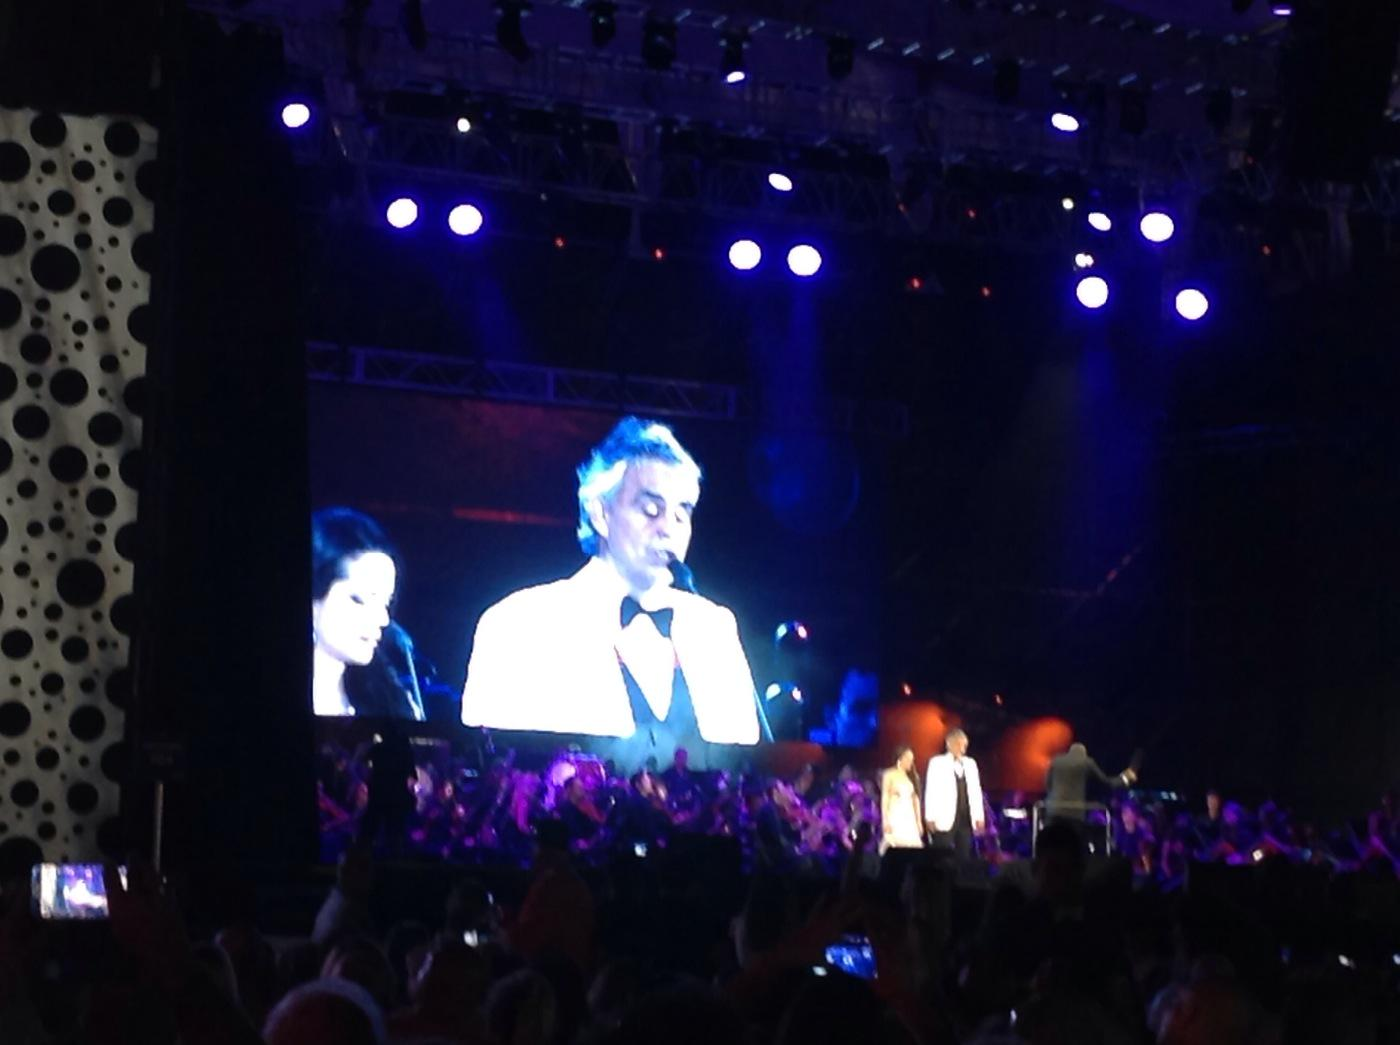 #AndreaBocelli, incredible when this man sings you know GOD has angels sing! #MiamiBeach100 http://t.co/VvtLLYMhPX